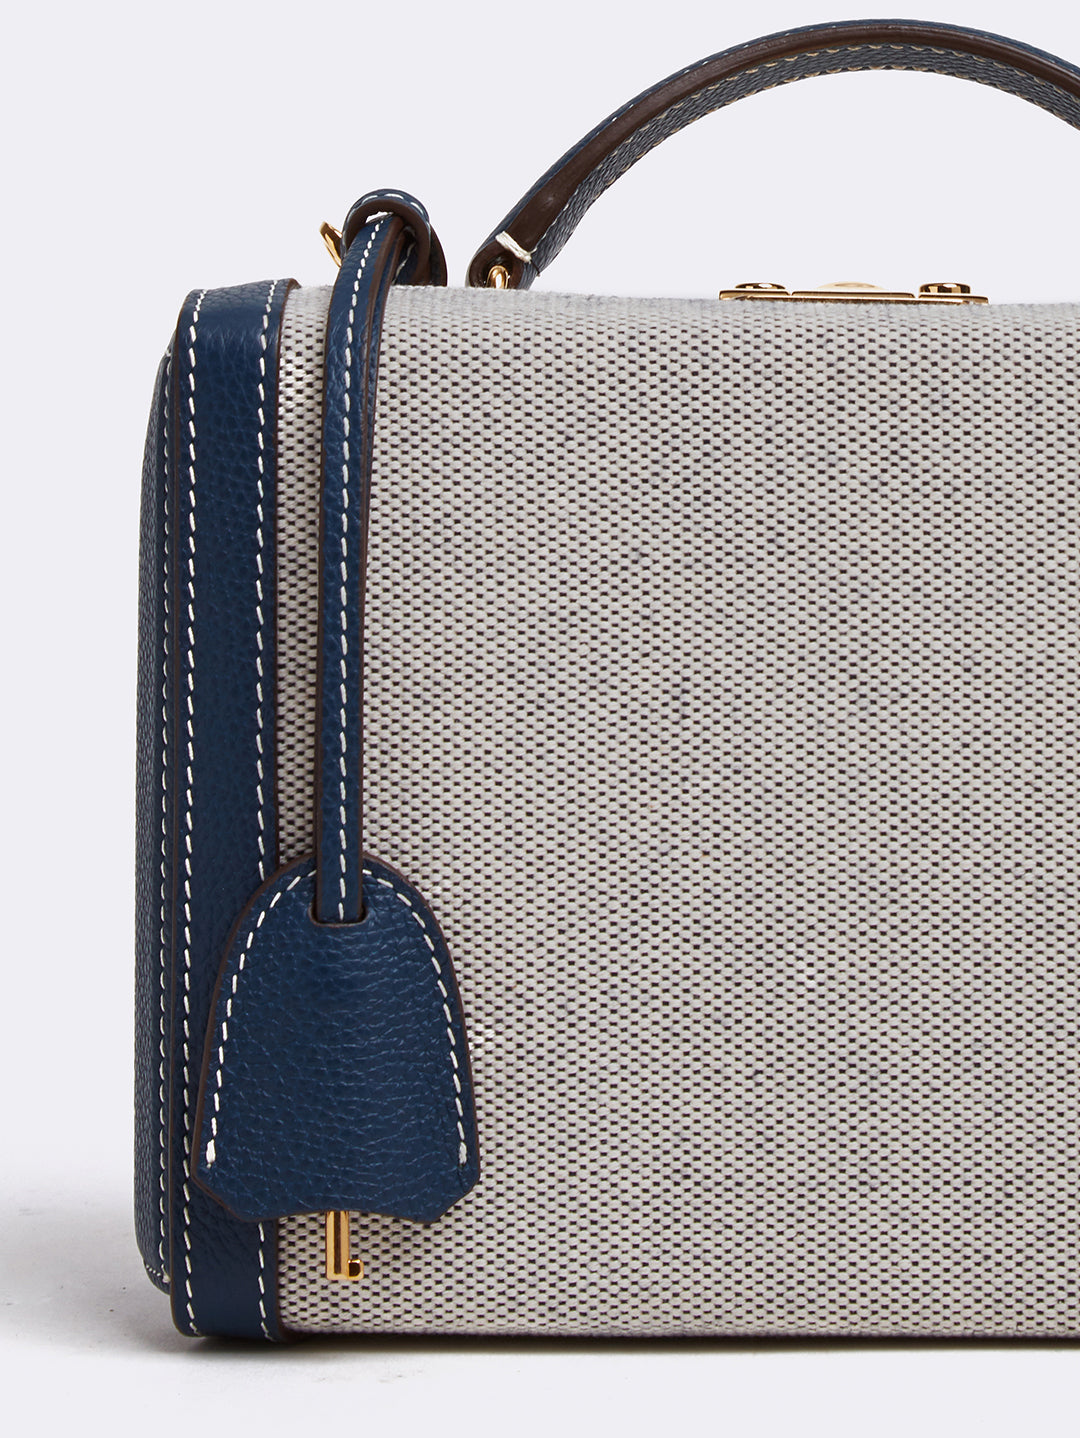 Mark Cross Grace Small Leather & Birdseye Box Bag Tumbled Grain Navy / Birdseye Detail